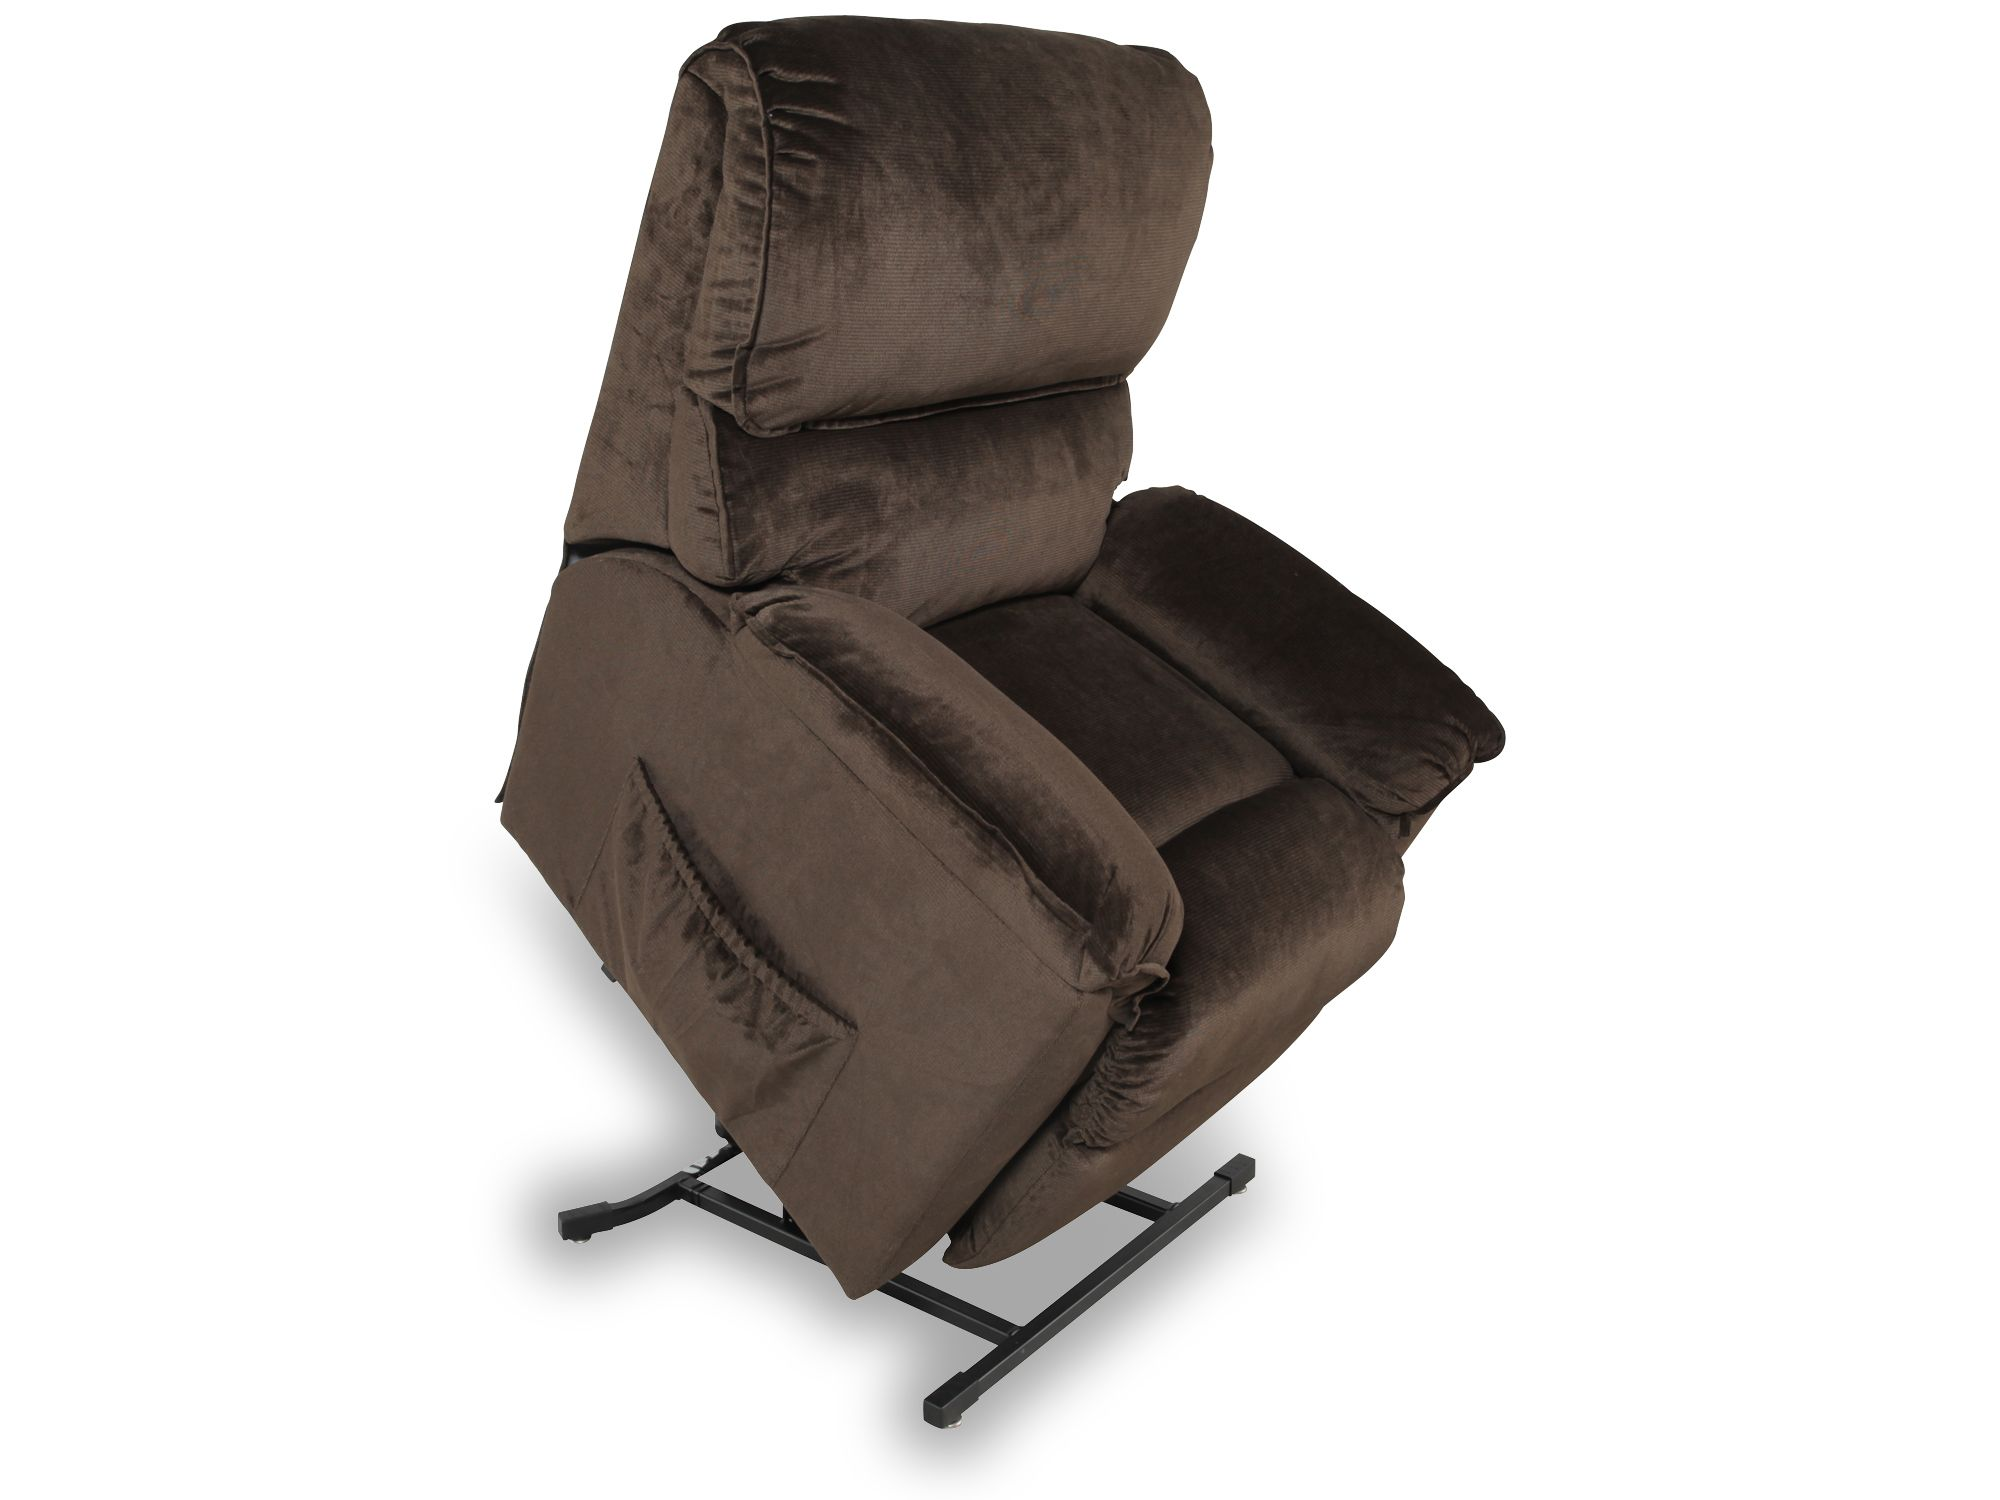 Lane harold lift chair recliner mathis brothers furniture for Recliner lift chair